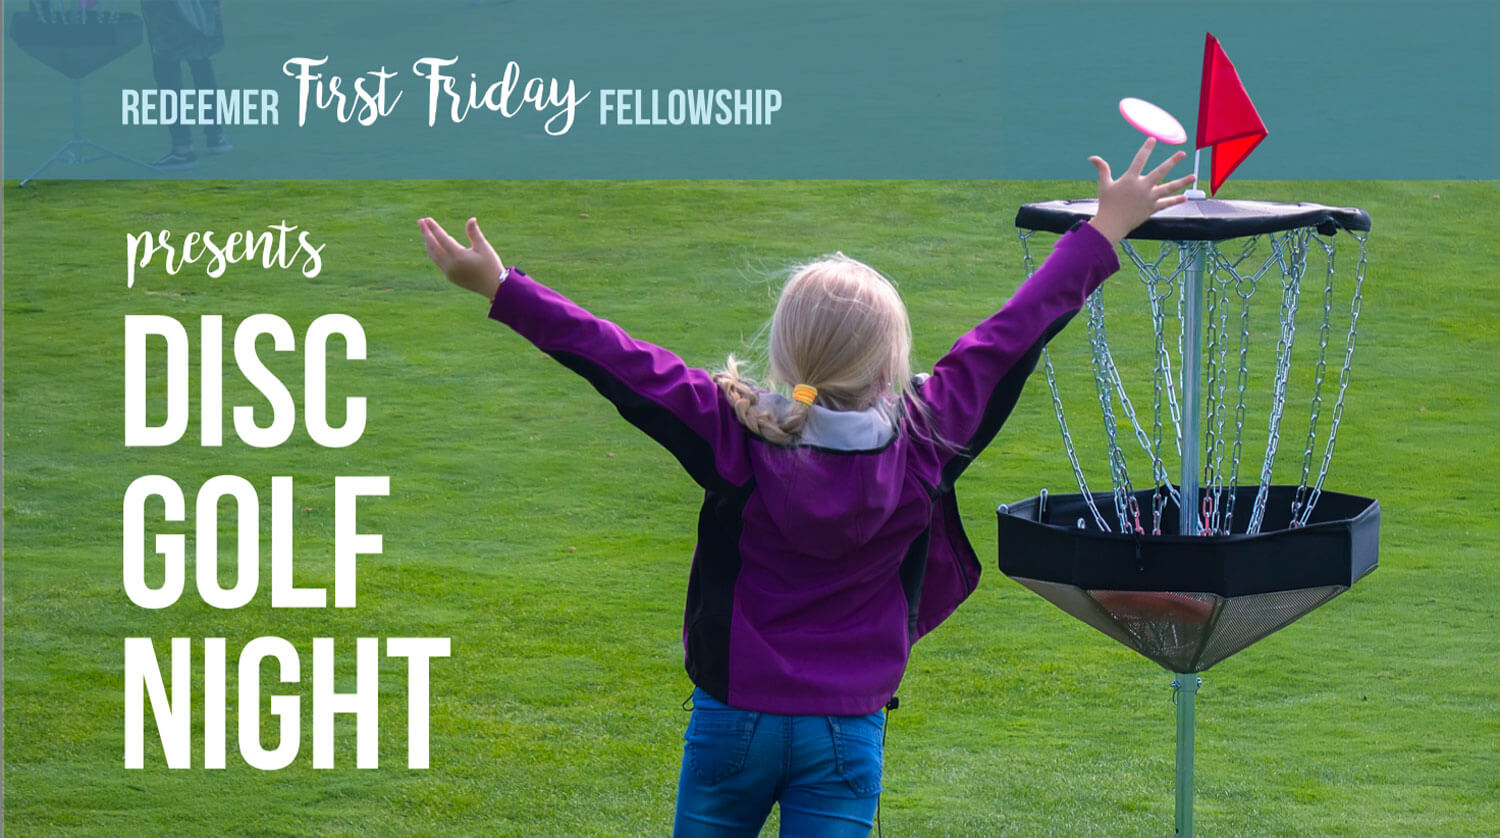 First Friday Fellowship Disc Golf Night at Redeemer Lutheran Church in Charleston, West Virginia